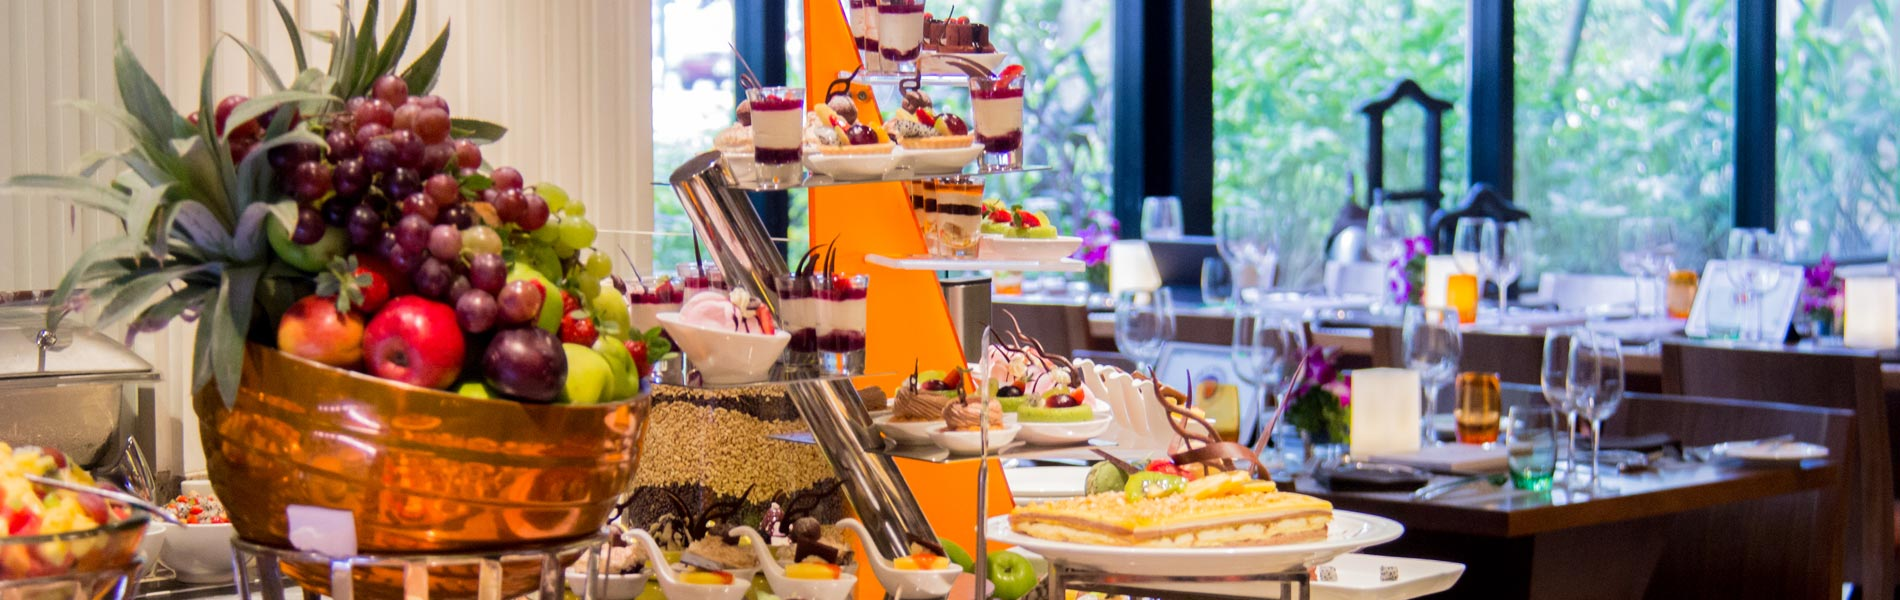 Delicious treats of desserts and pastry at the buffet